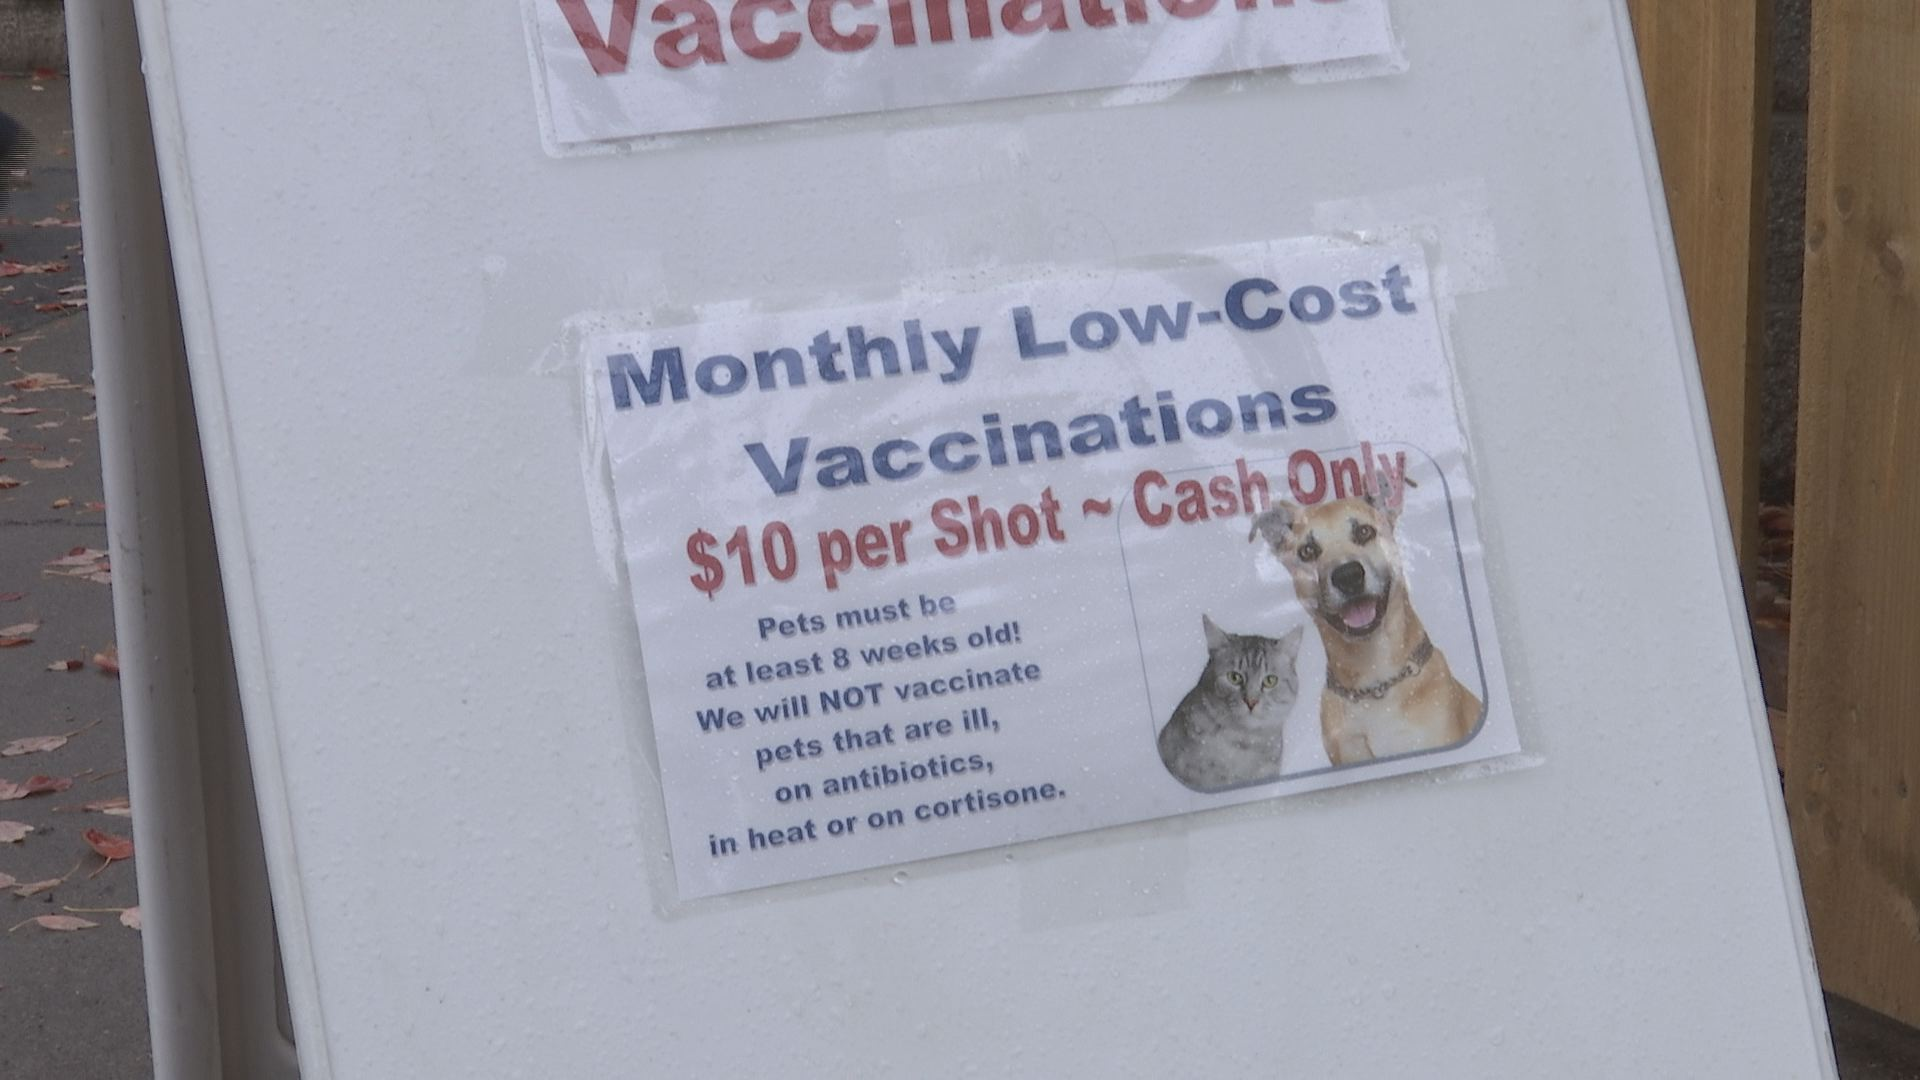 Even Dogs Dont Like Having To Go To The Doctor To Get Their Shots However Jackson County Animal Services Offered Low Cost Vaccinations Today To Help